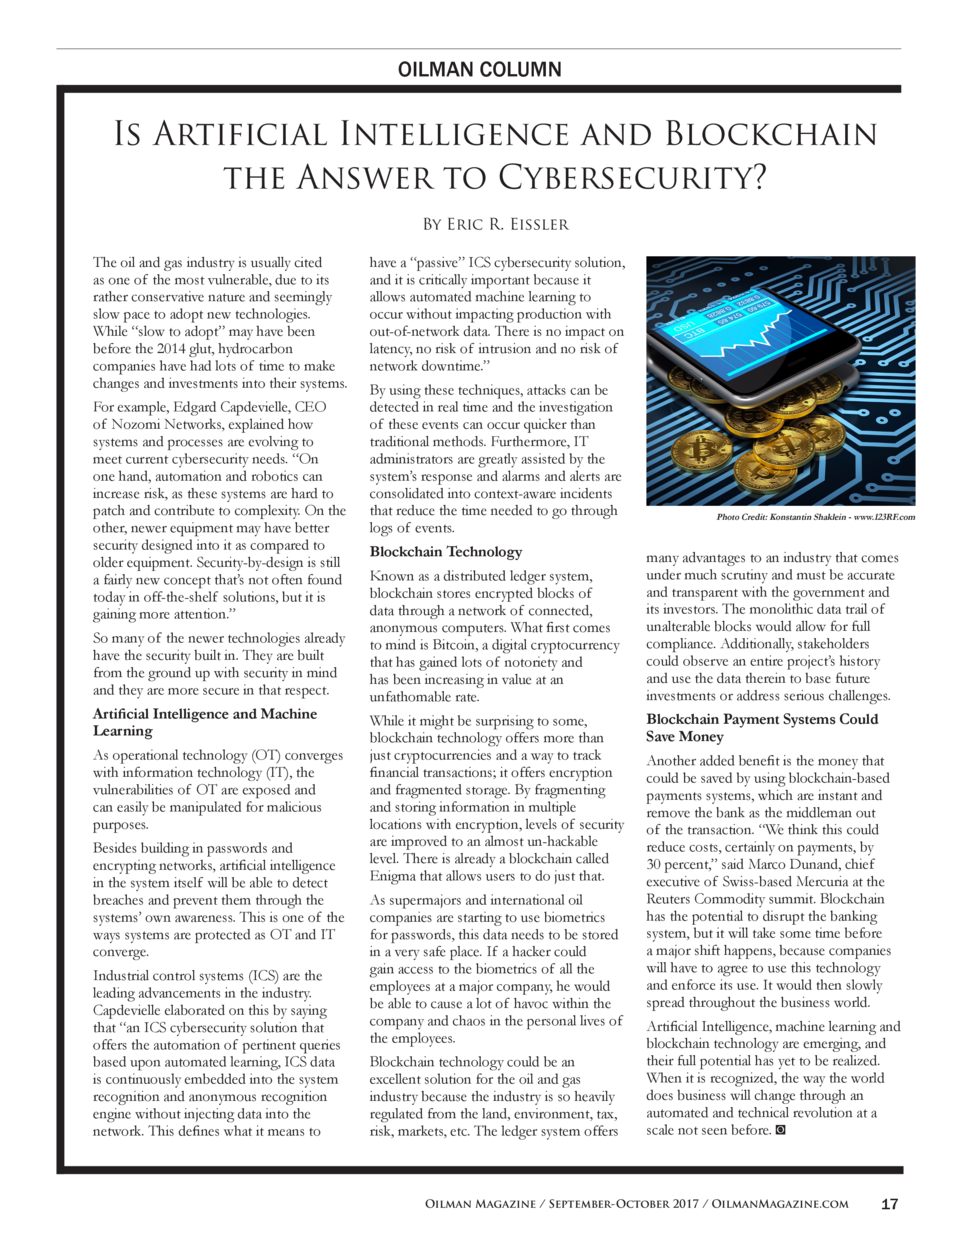 OILMAN COLUMN  Is Artificial Intelligence and Blockchain the Answer to Cybersecurity  By Eric R. Eissler The oil and gas i...